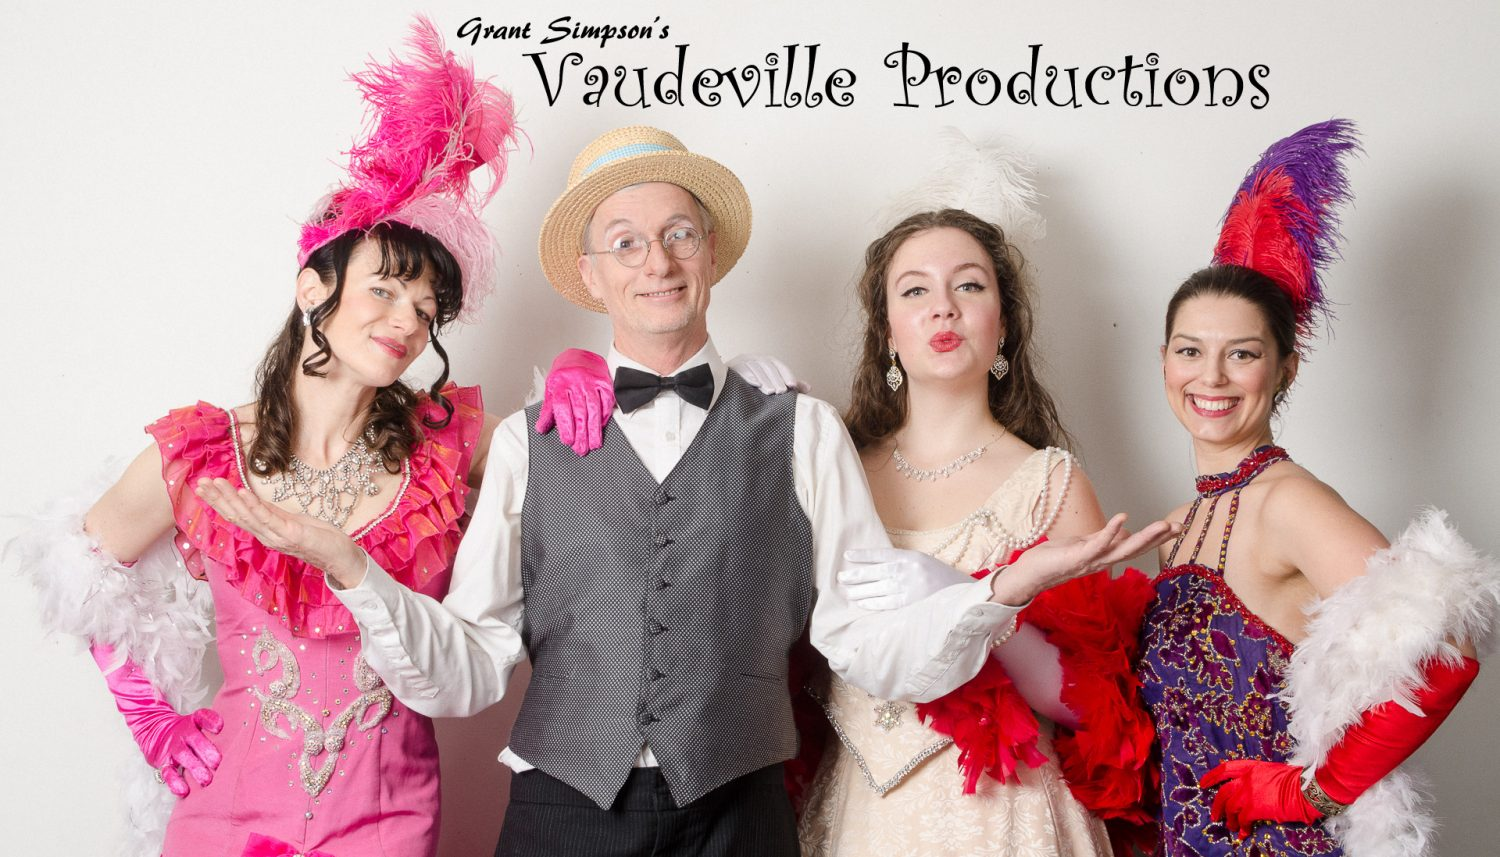 Grant Simpson Vaudeville Productions